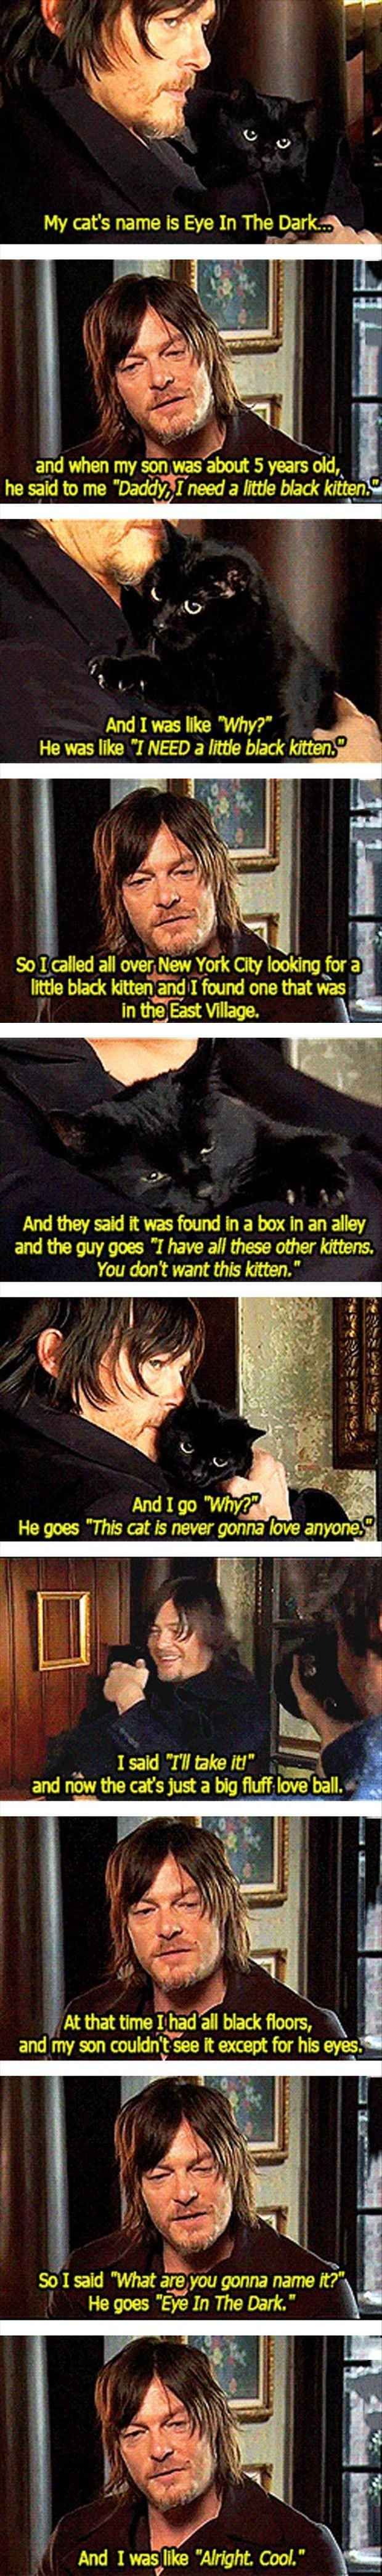 The story of Norman Reedus